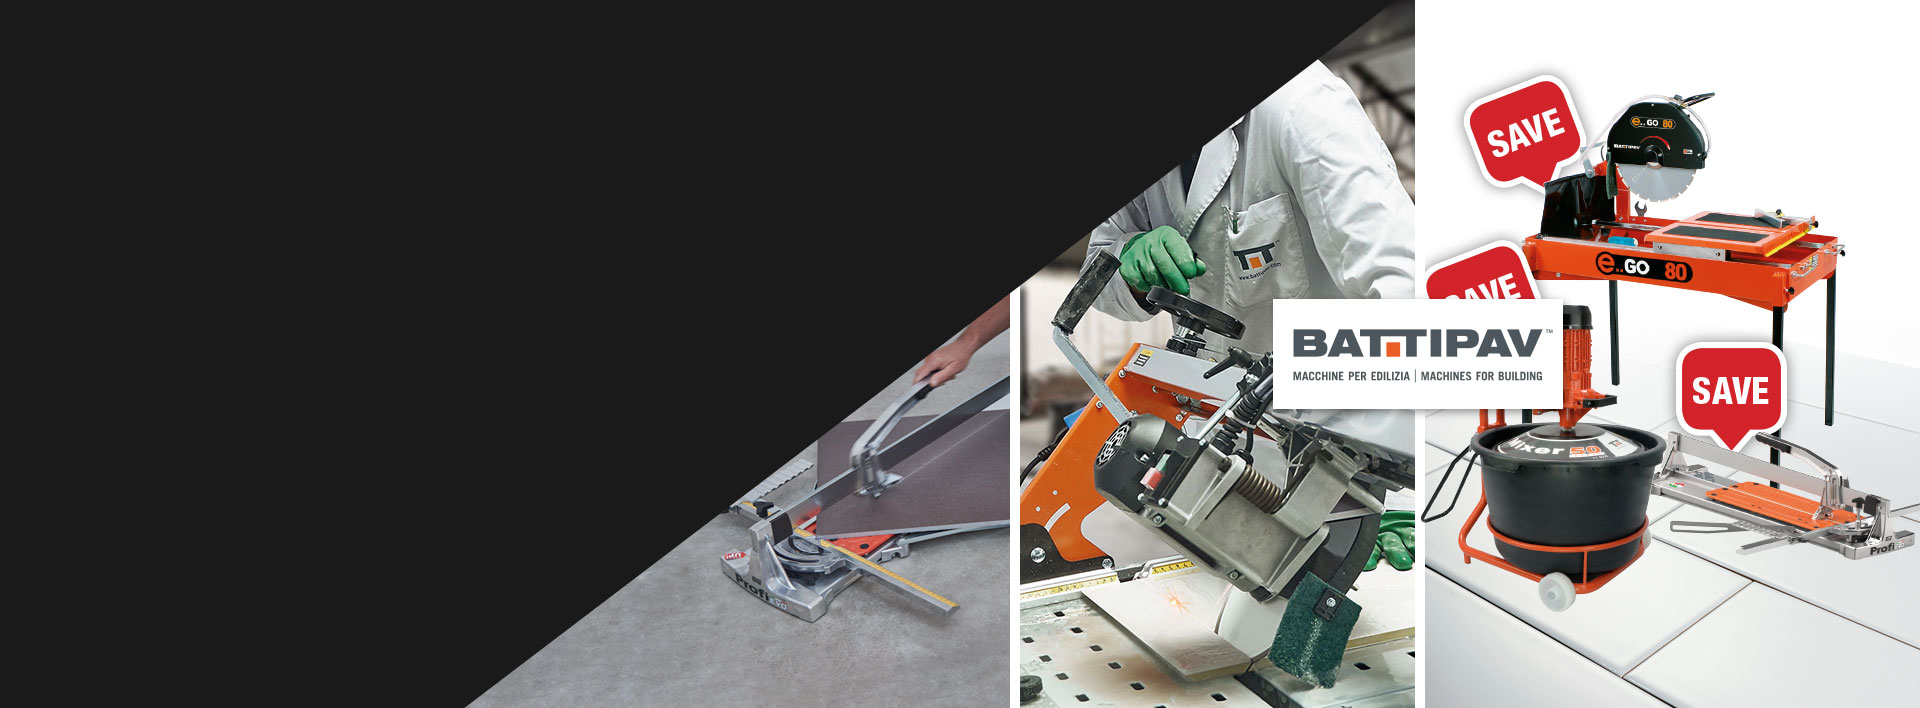 Battipav Tile Cutting Offers